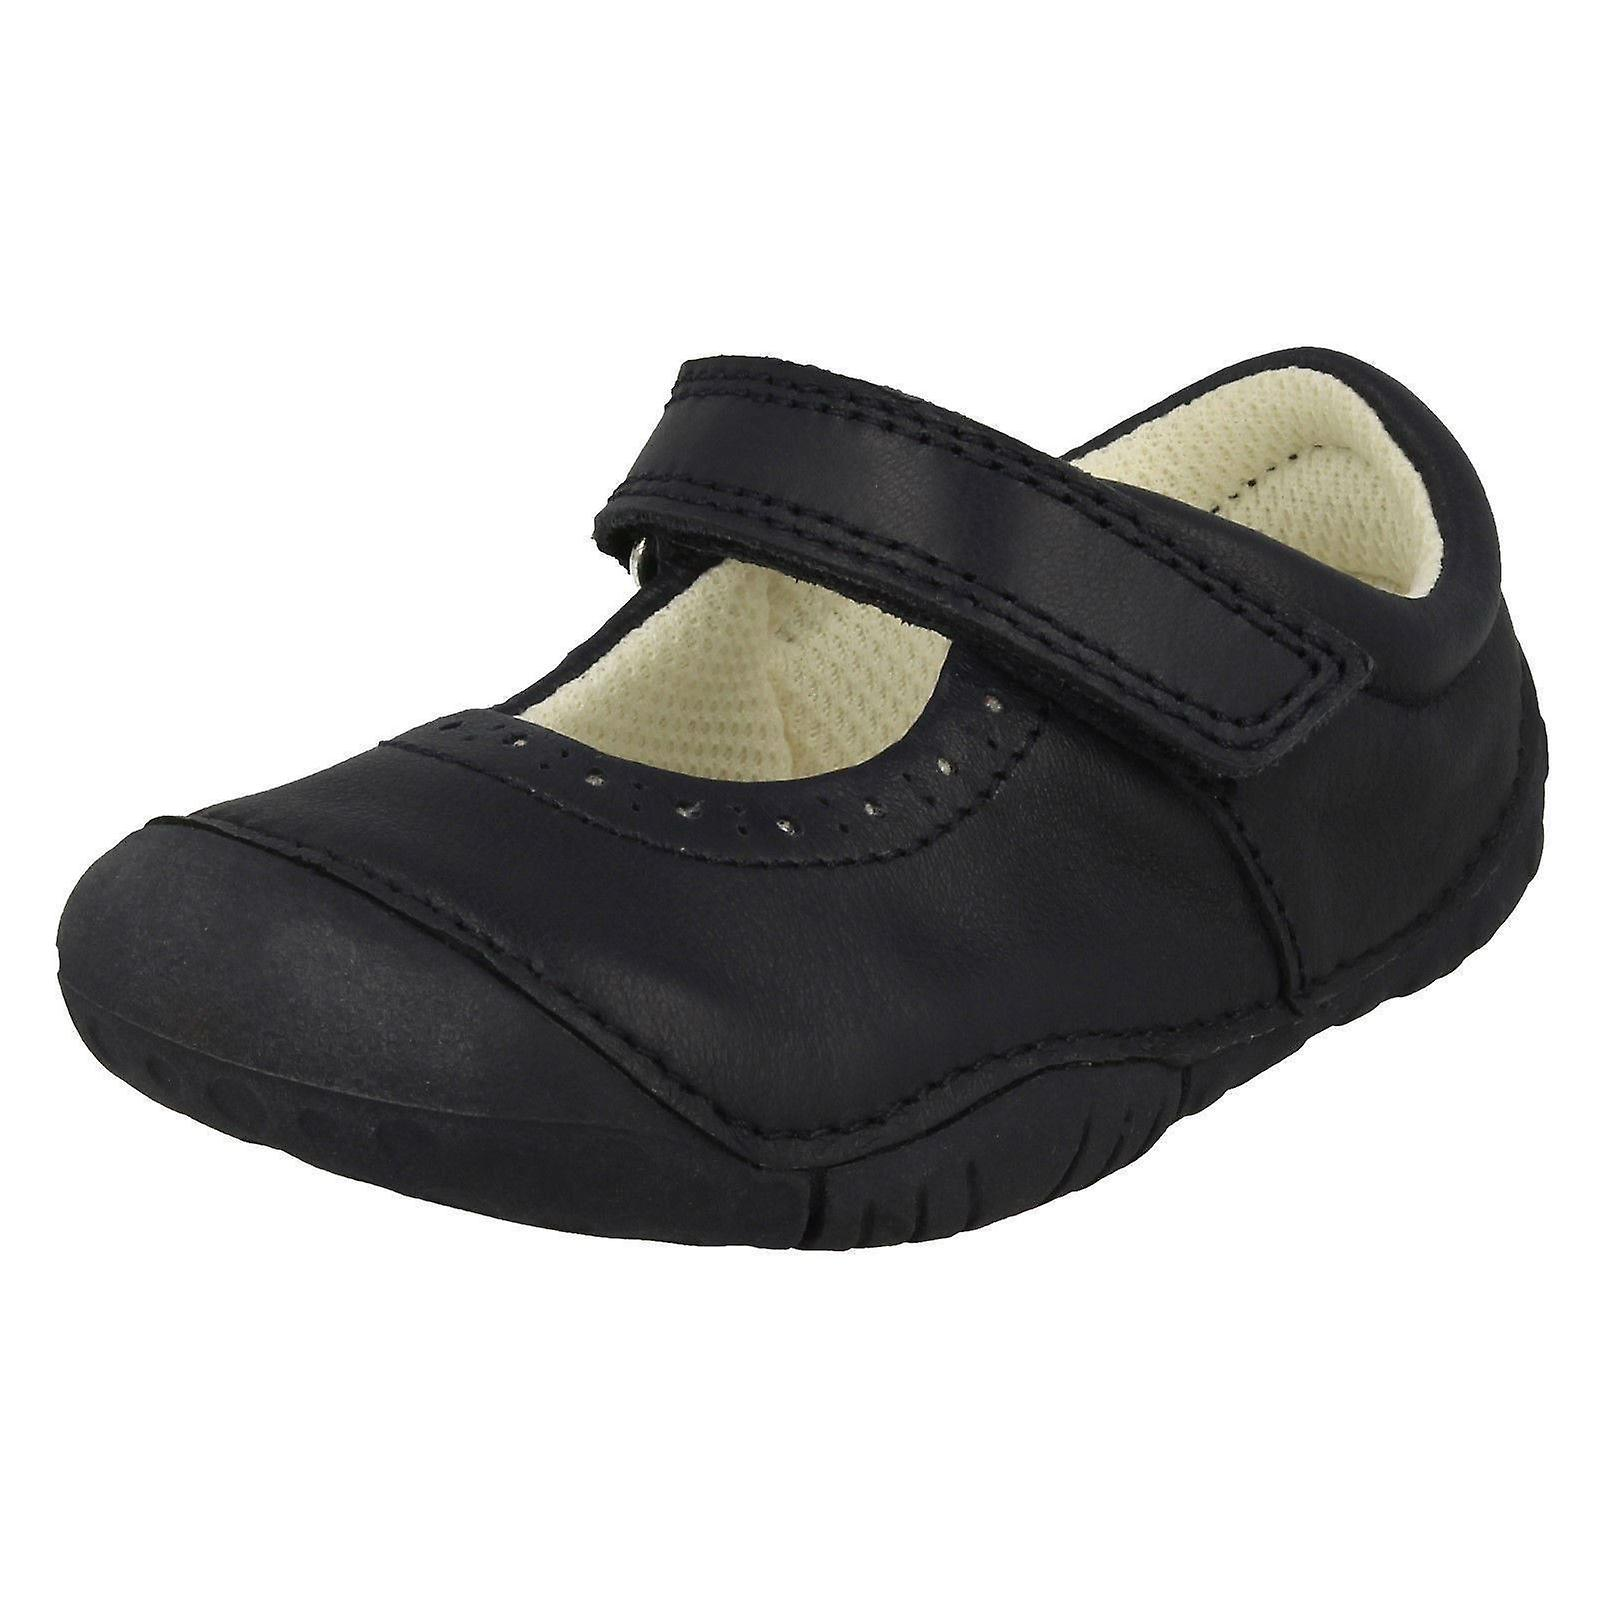 Filles, chaussures occasionnelles Startrite croisière - Marine Nubuck - UK Taille 4F - UE Taille 20 - Taille US 5